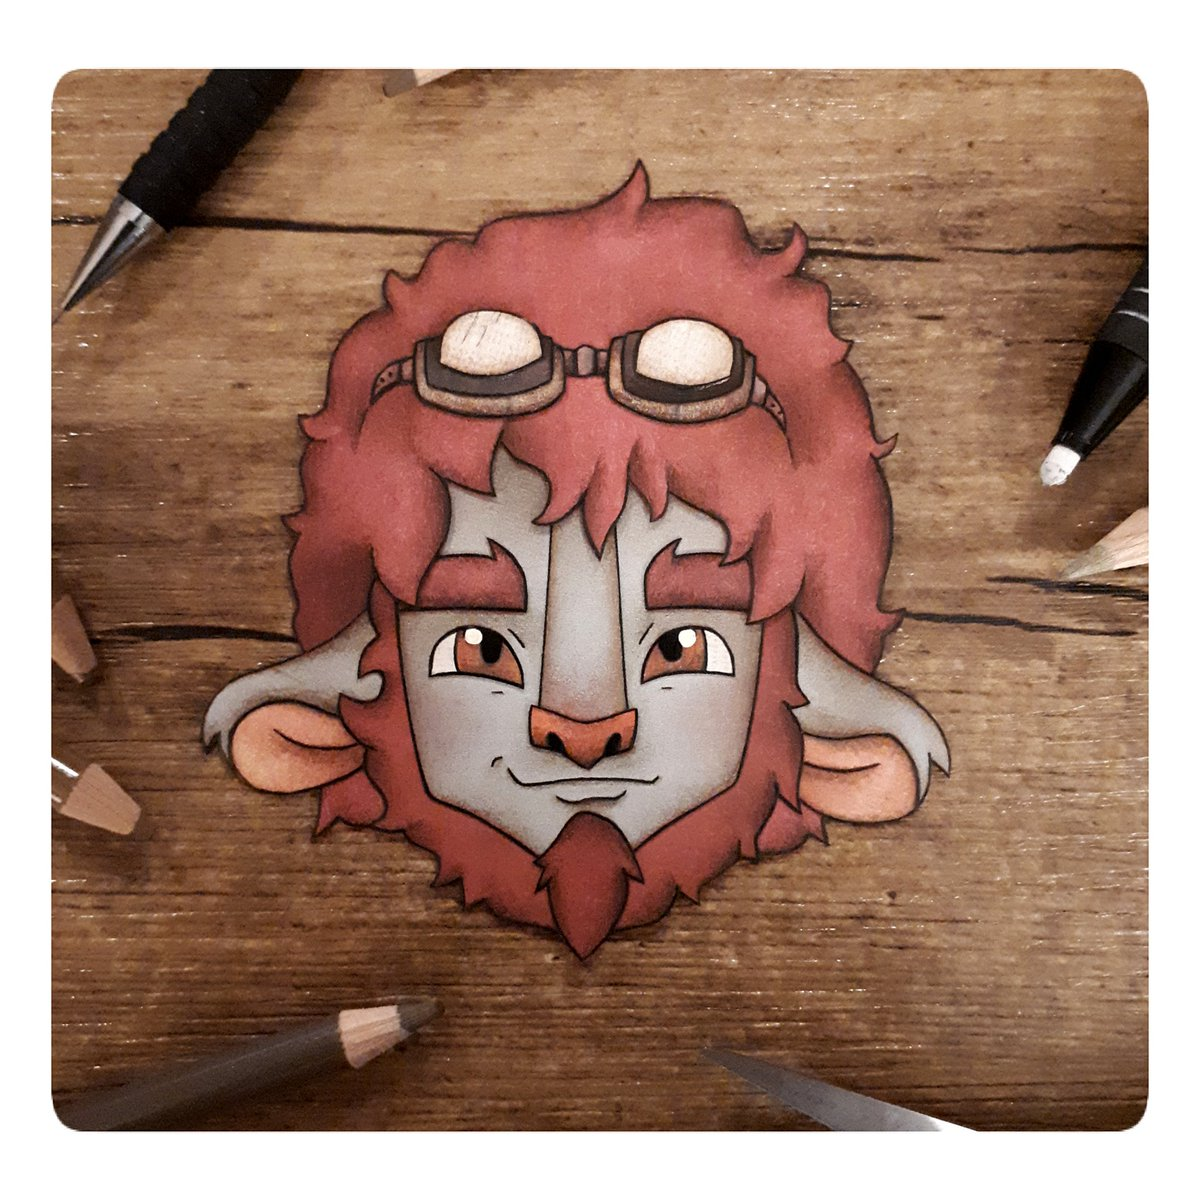 Pumat Prime illustration ready to be turned into pins! Will be available soon! #criticalrolefanart #CriticalRoleArt #pumatsol #pumatprime #papercollage #collageartist #MightyNein #CriticalRole